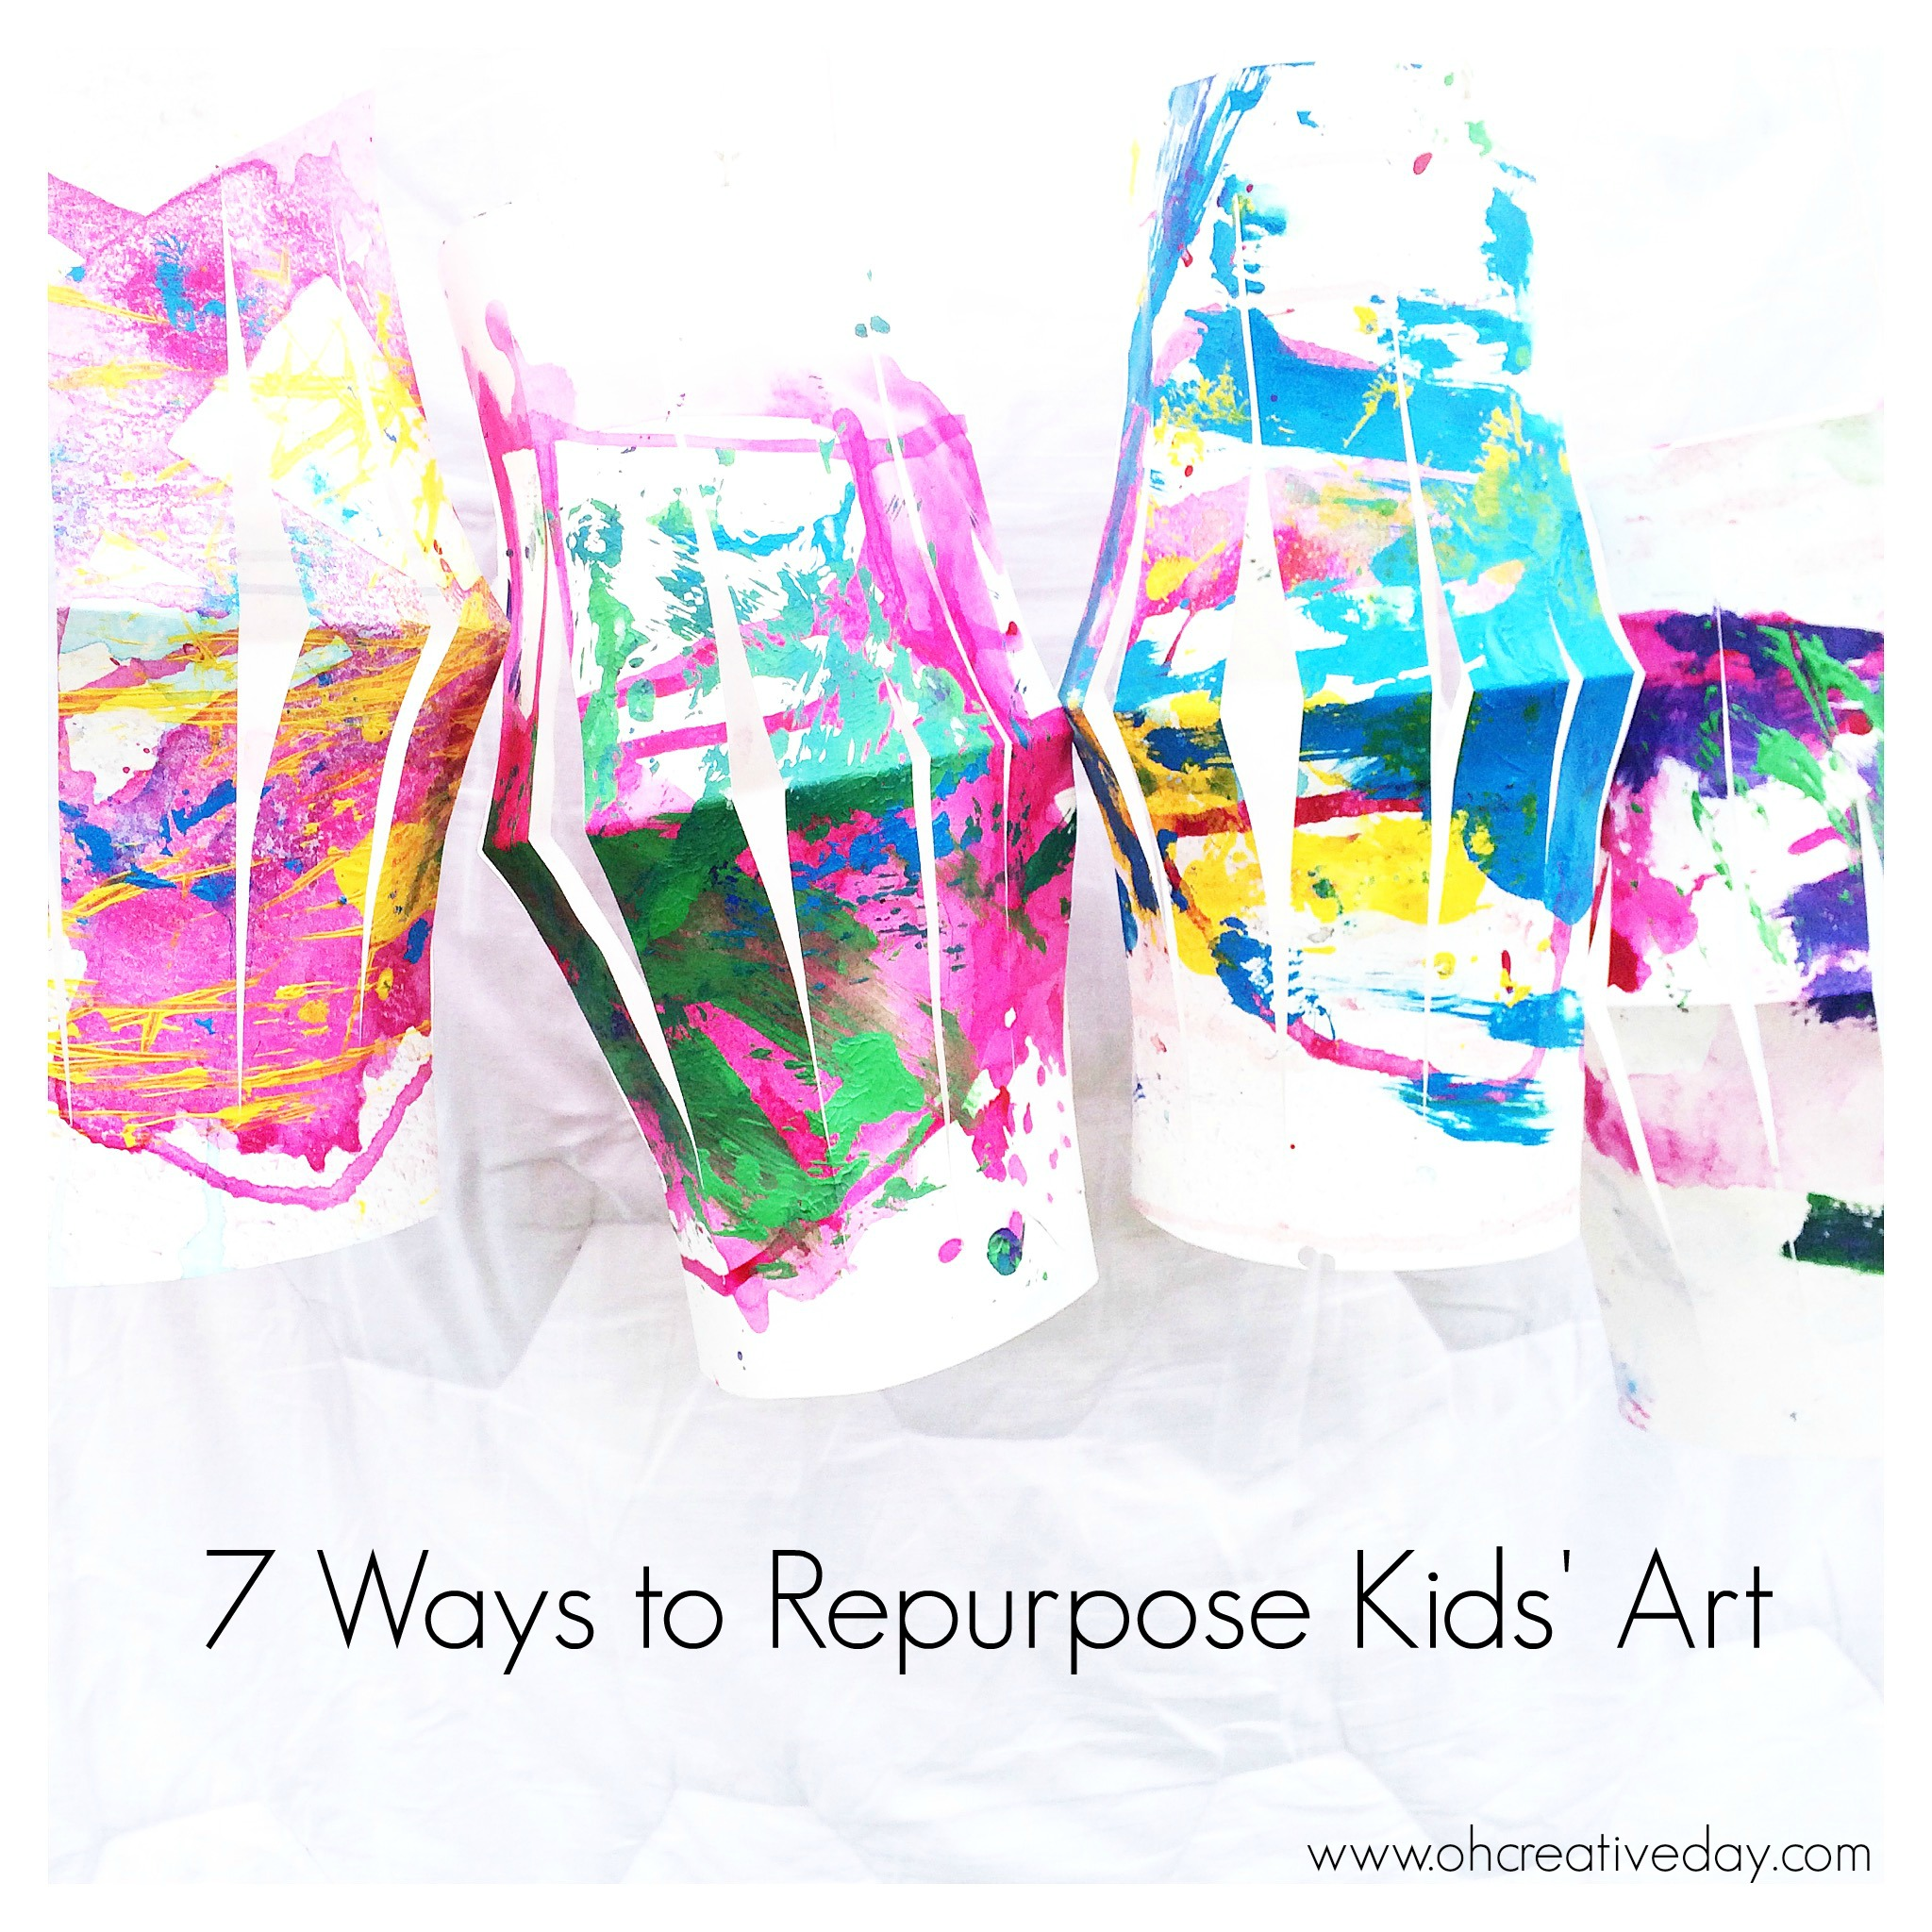 7 Ways to Repurpose Kids Art - Oh Creative Day